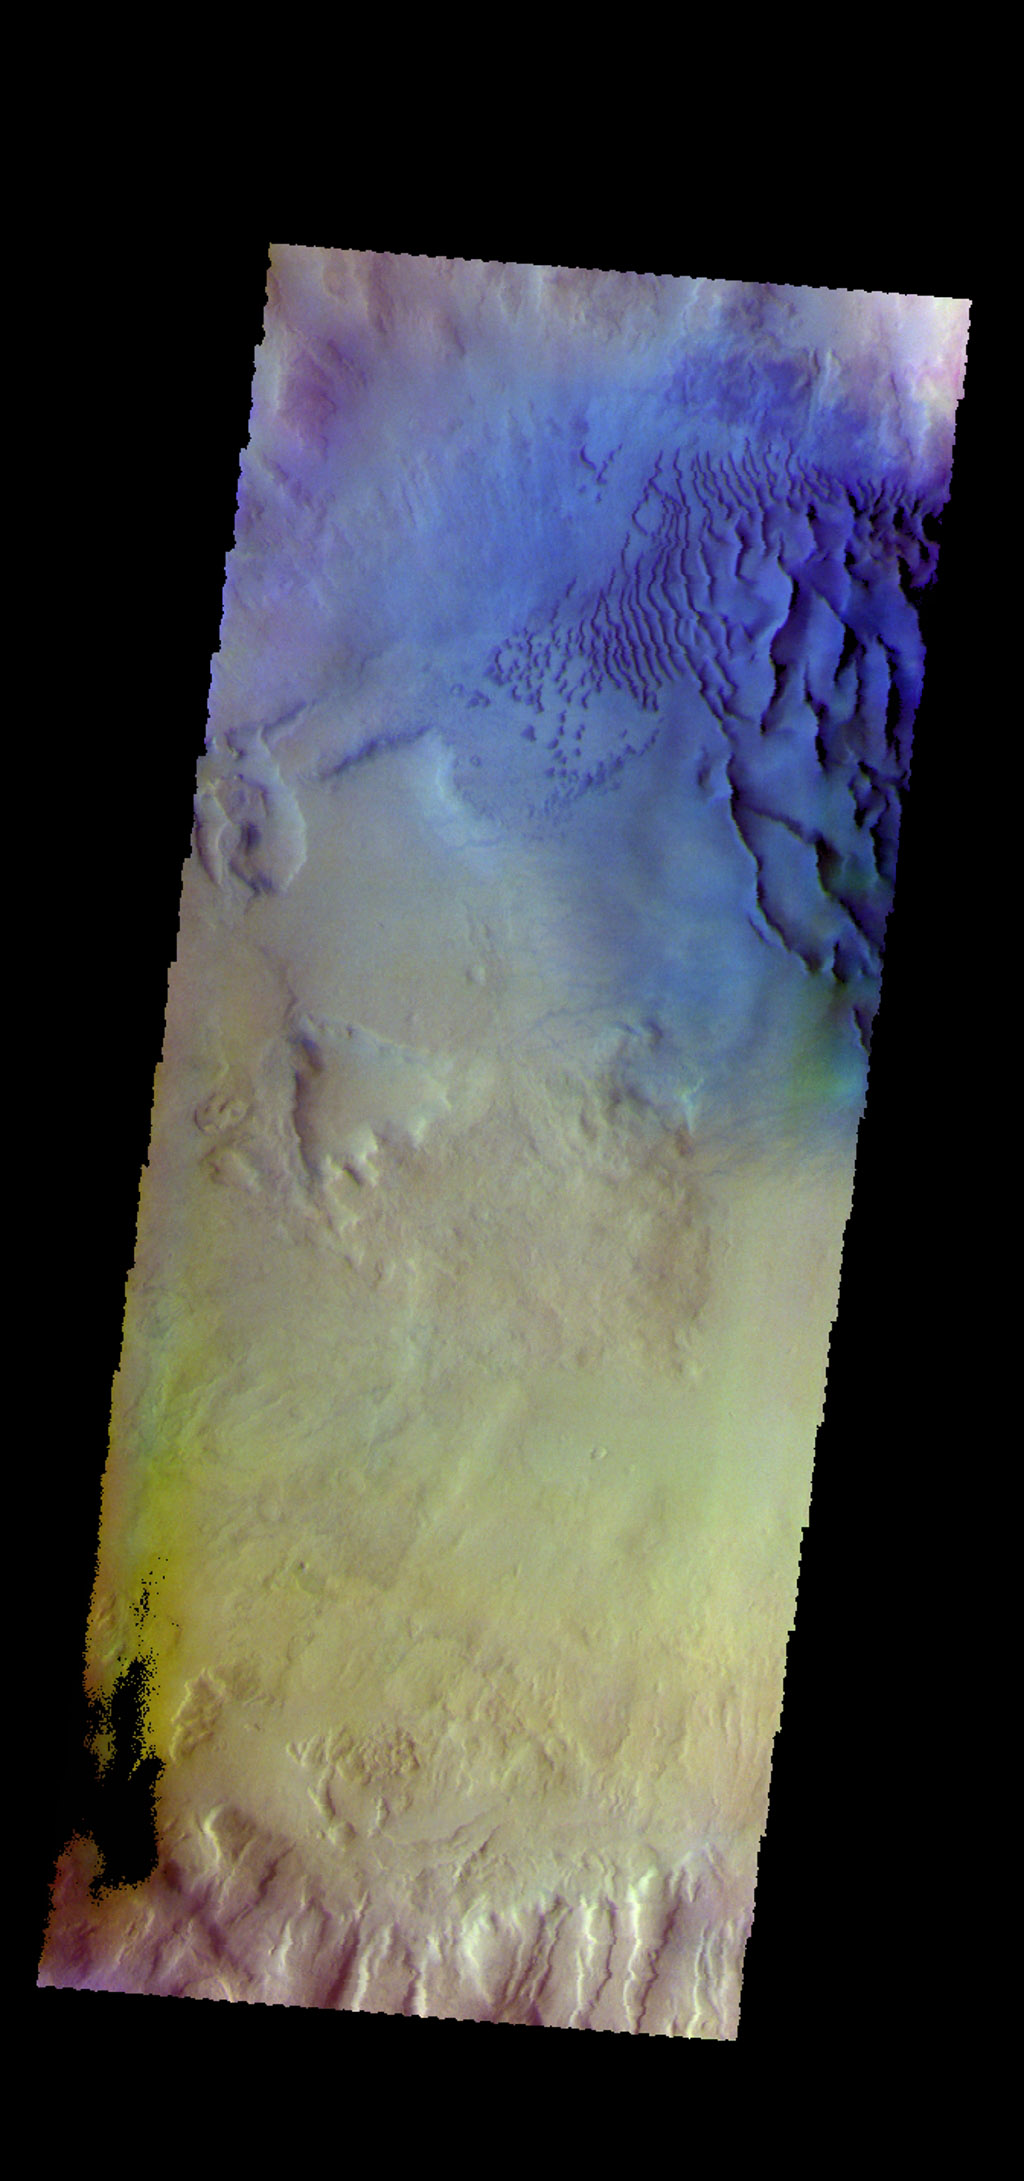 The THEMIS camera contains 5 filters. Data from different filters can be combined in many ways to create a false color image. This image from NASA's 2001 Mars Odyssey spacecraft shows dunes on the floor of an unnamed crater in Noachis Terra.